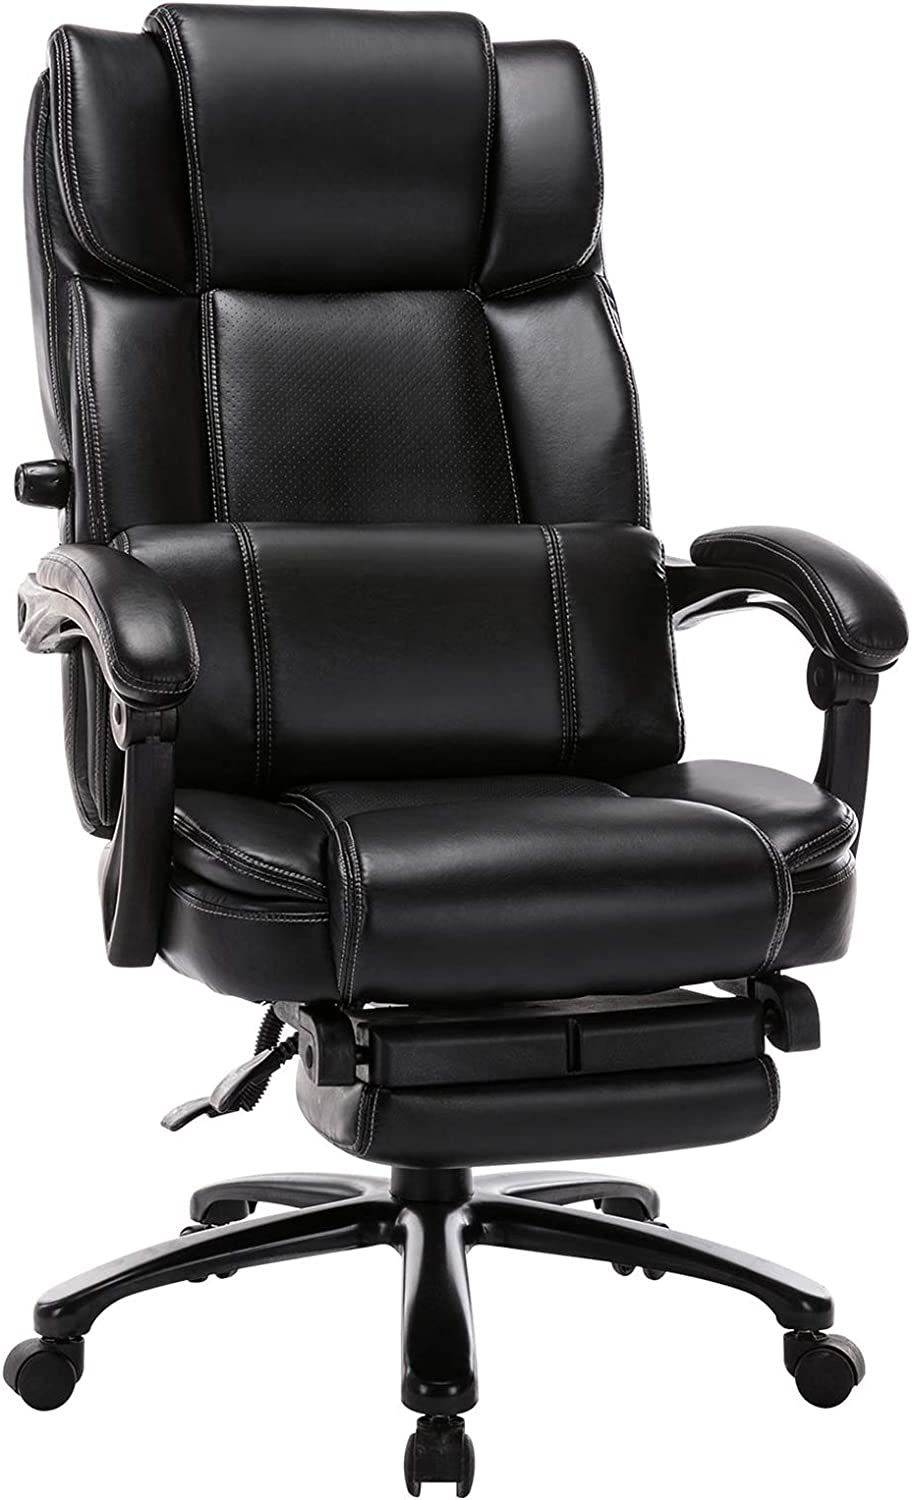 Big and Tall Reclining Office Chair - High Back Executive Computer Desk Chair with Footrest Adjustable Built-in Lumbar Support, Angle Recline Locking System, Thick Padding for Comfort